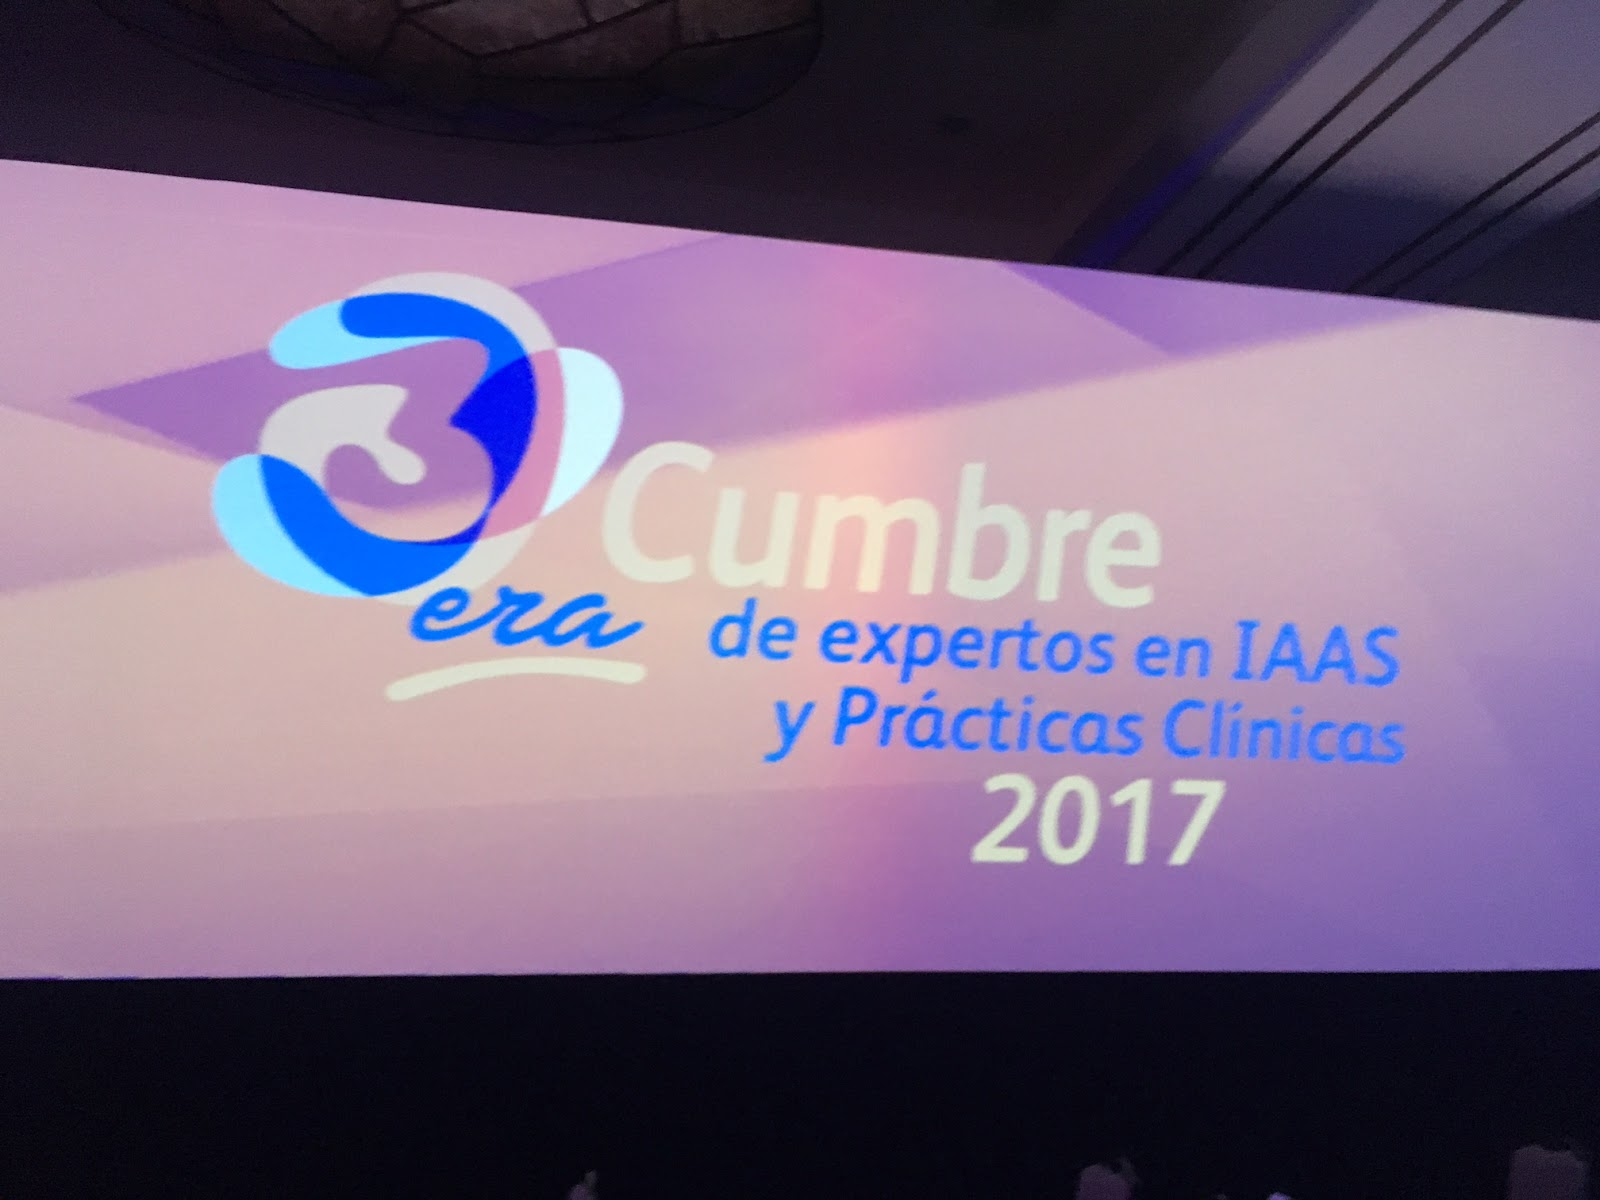 33854a3a8ff vox médica- dr. gonzalo bearman: 3rd Annual Summit of Experts on ...